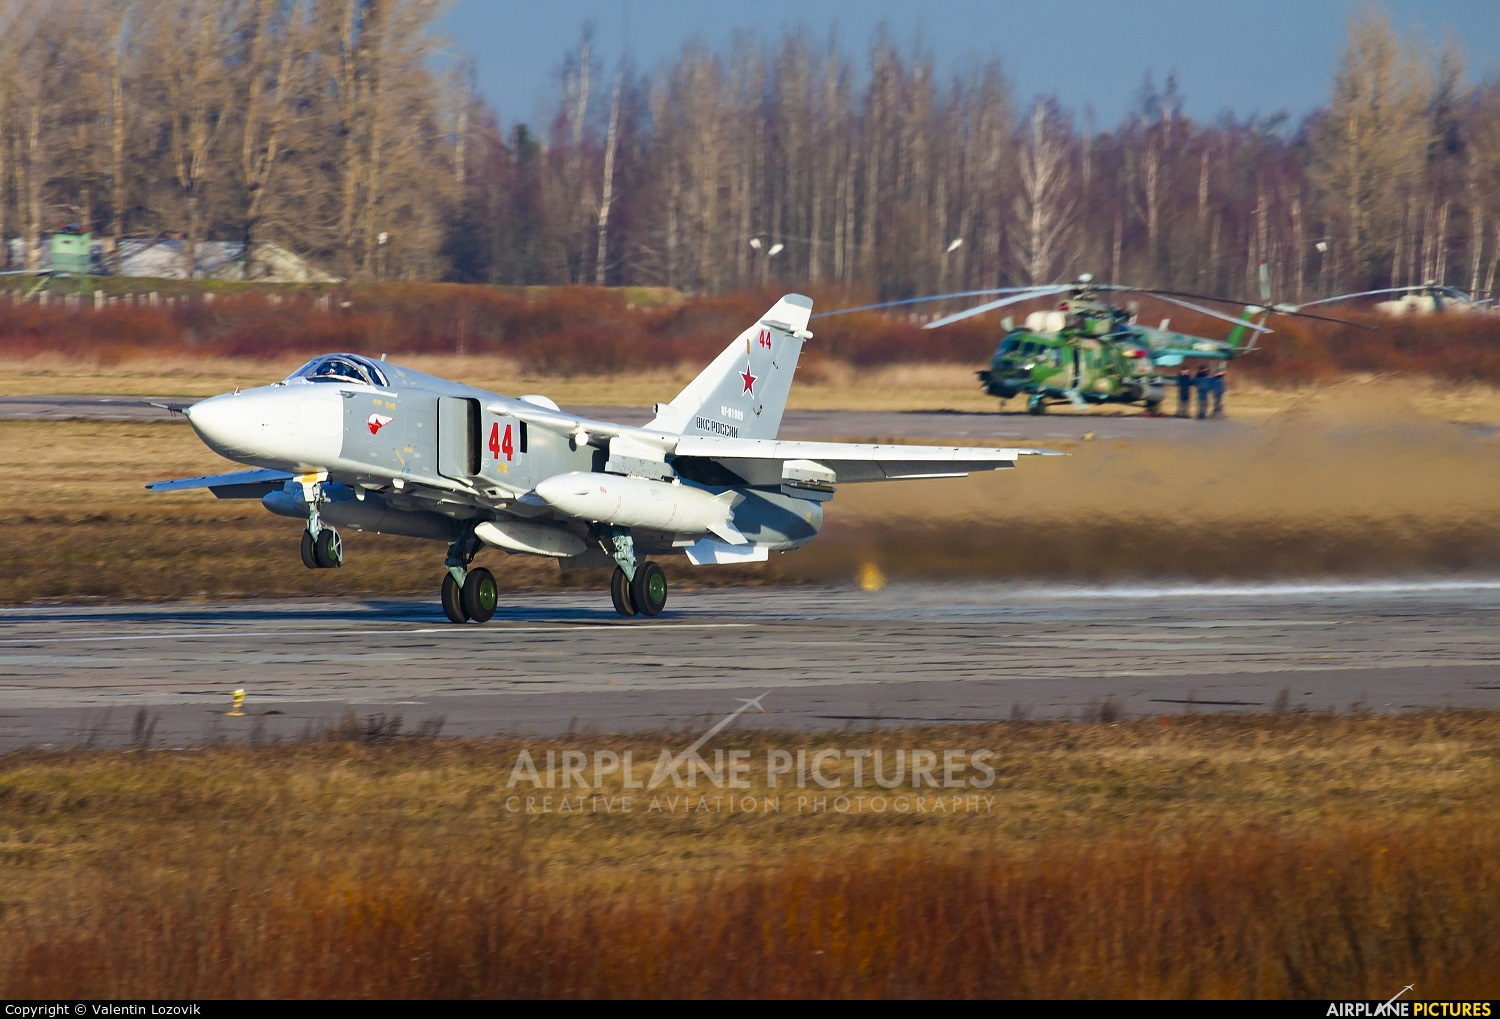 Russia - Air Force RF-91989 aircraft at Undisclosed location